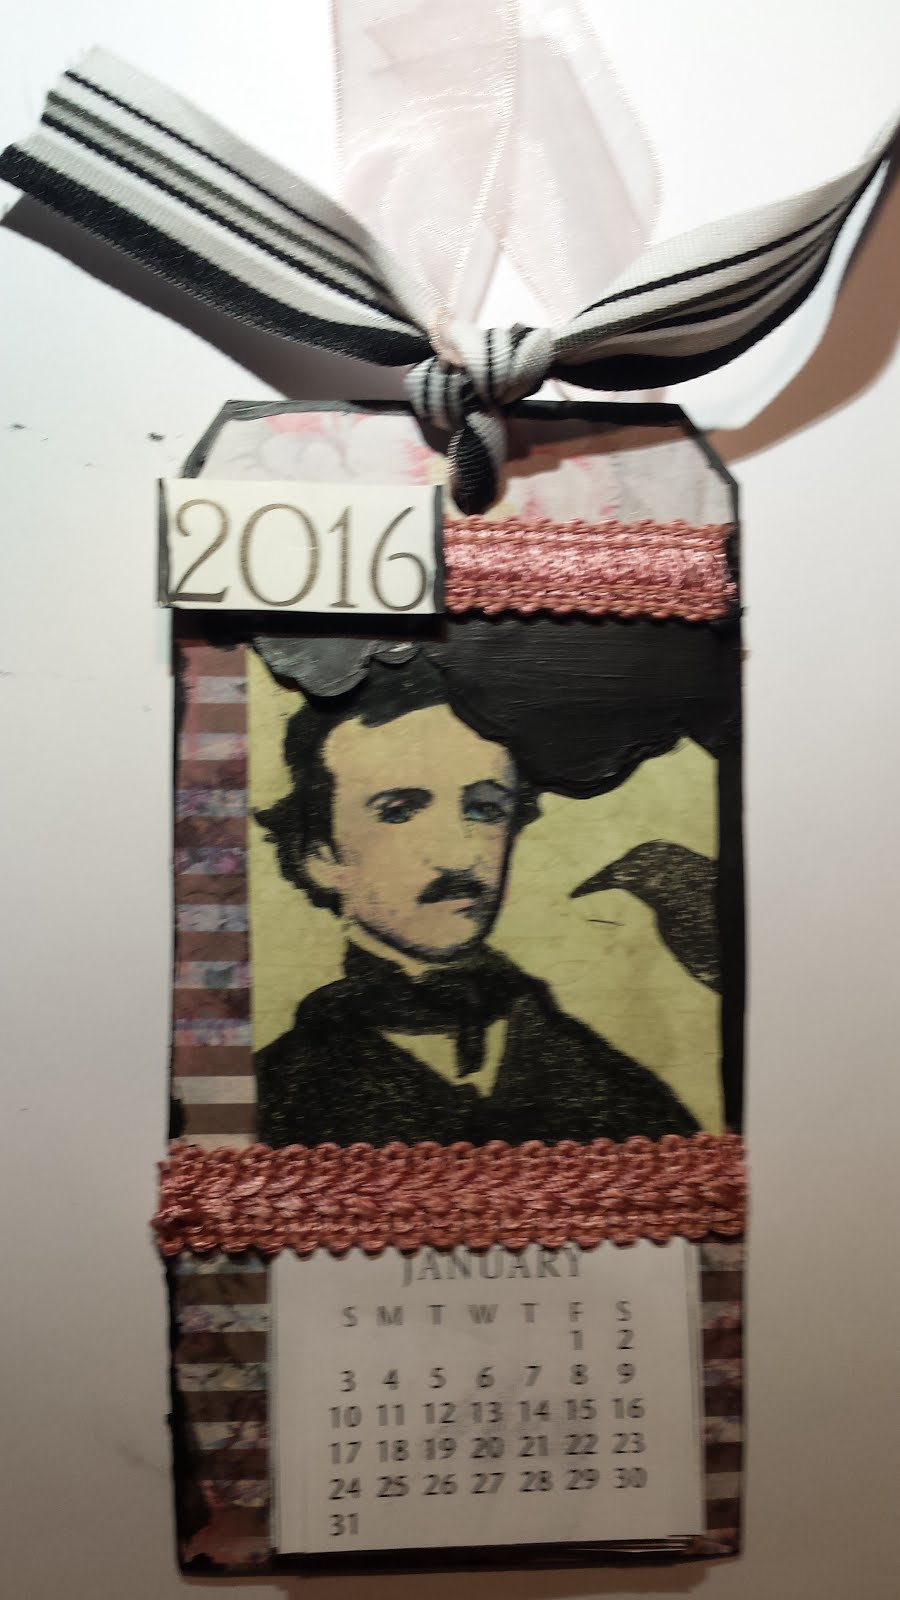 Poe Quote The Raven 2016 January Challenge